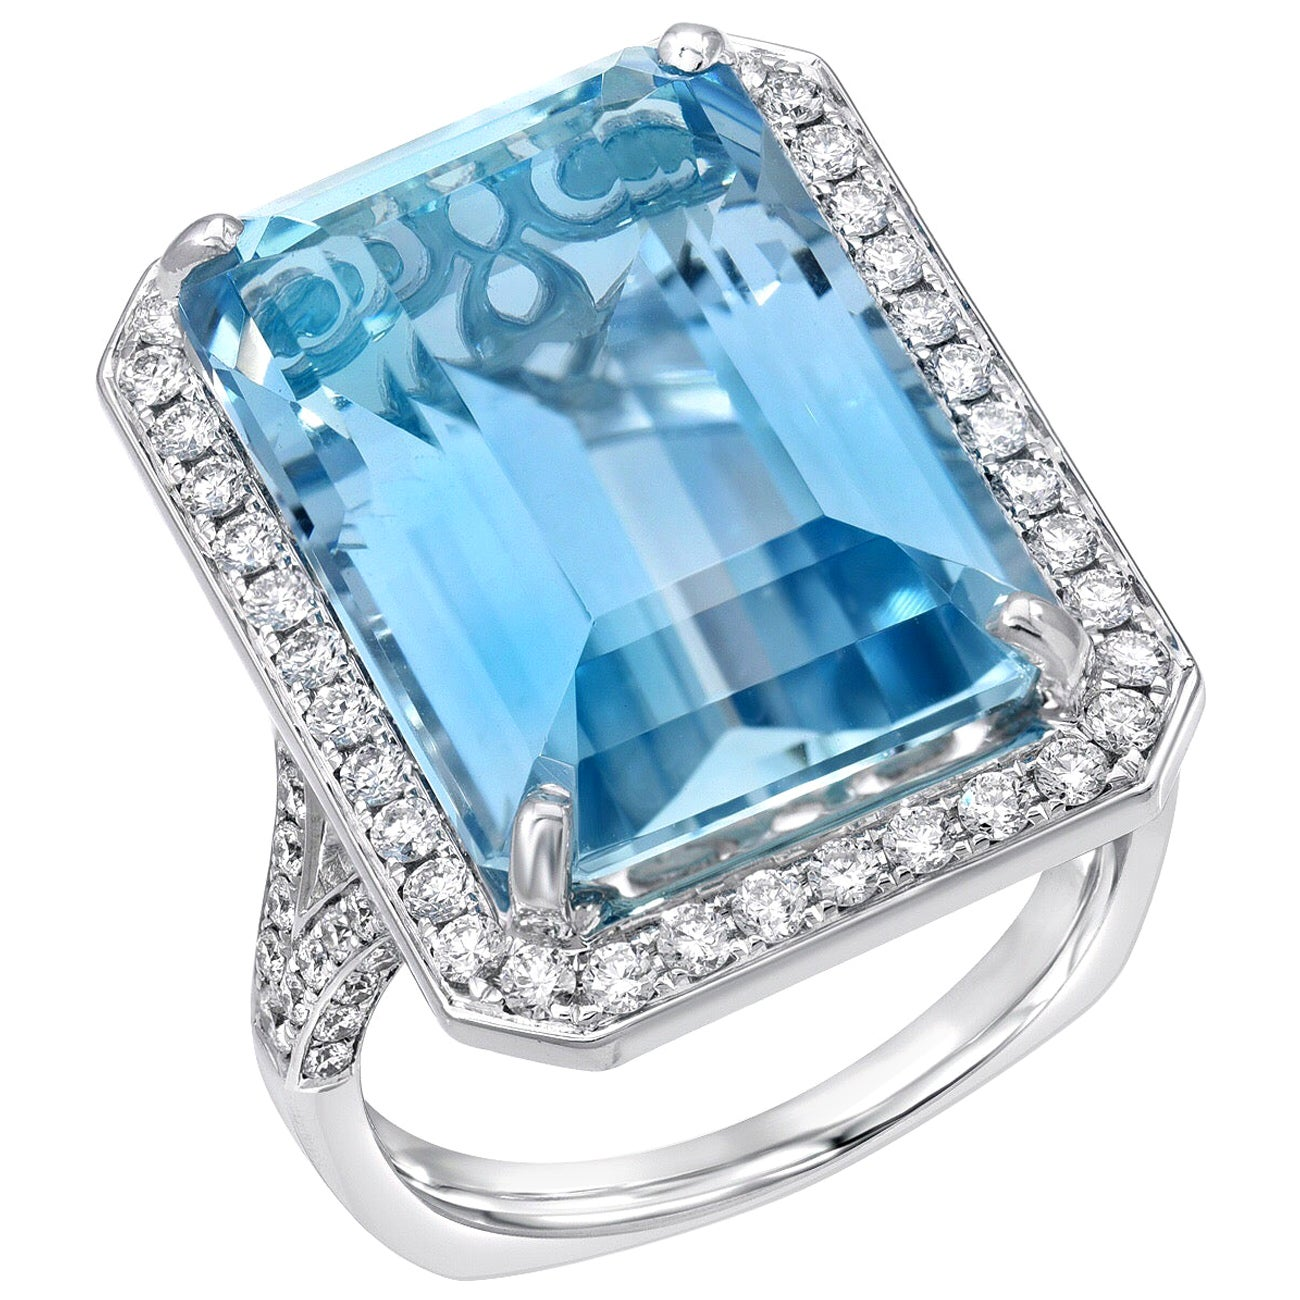 Aquamarine Ring 15 Carat Emerald Cut